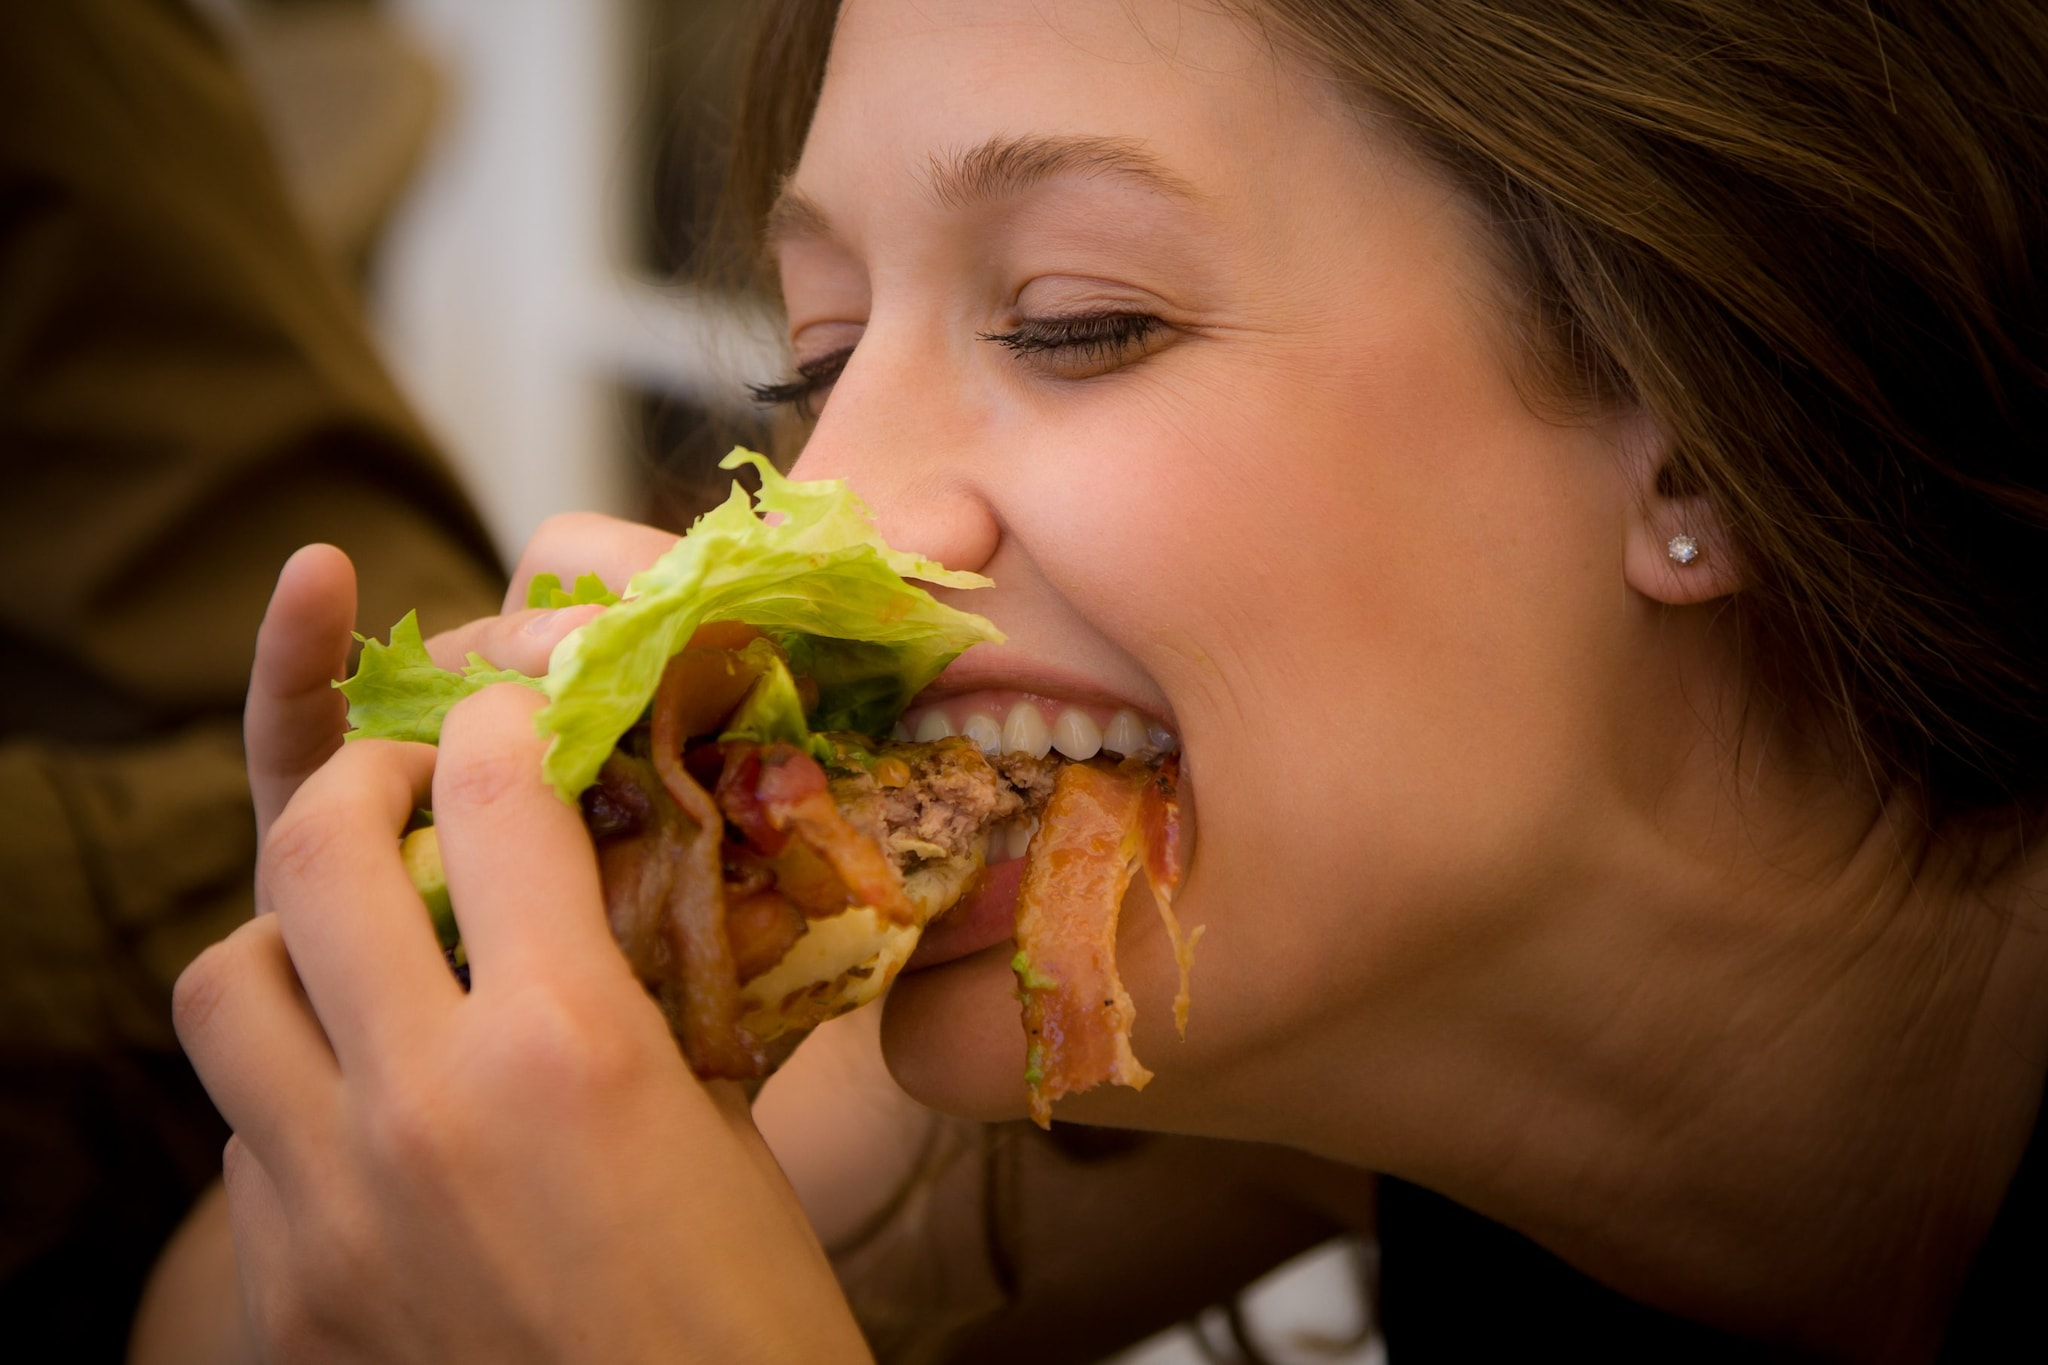 Woman mouth full food pictures